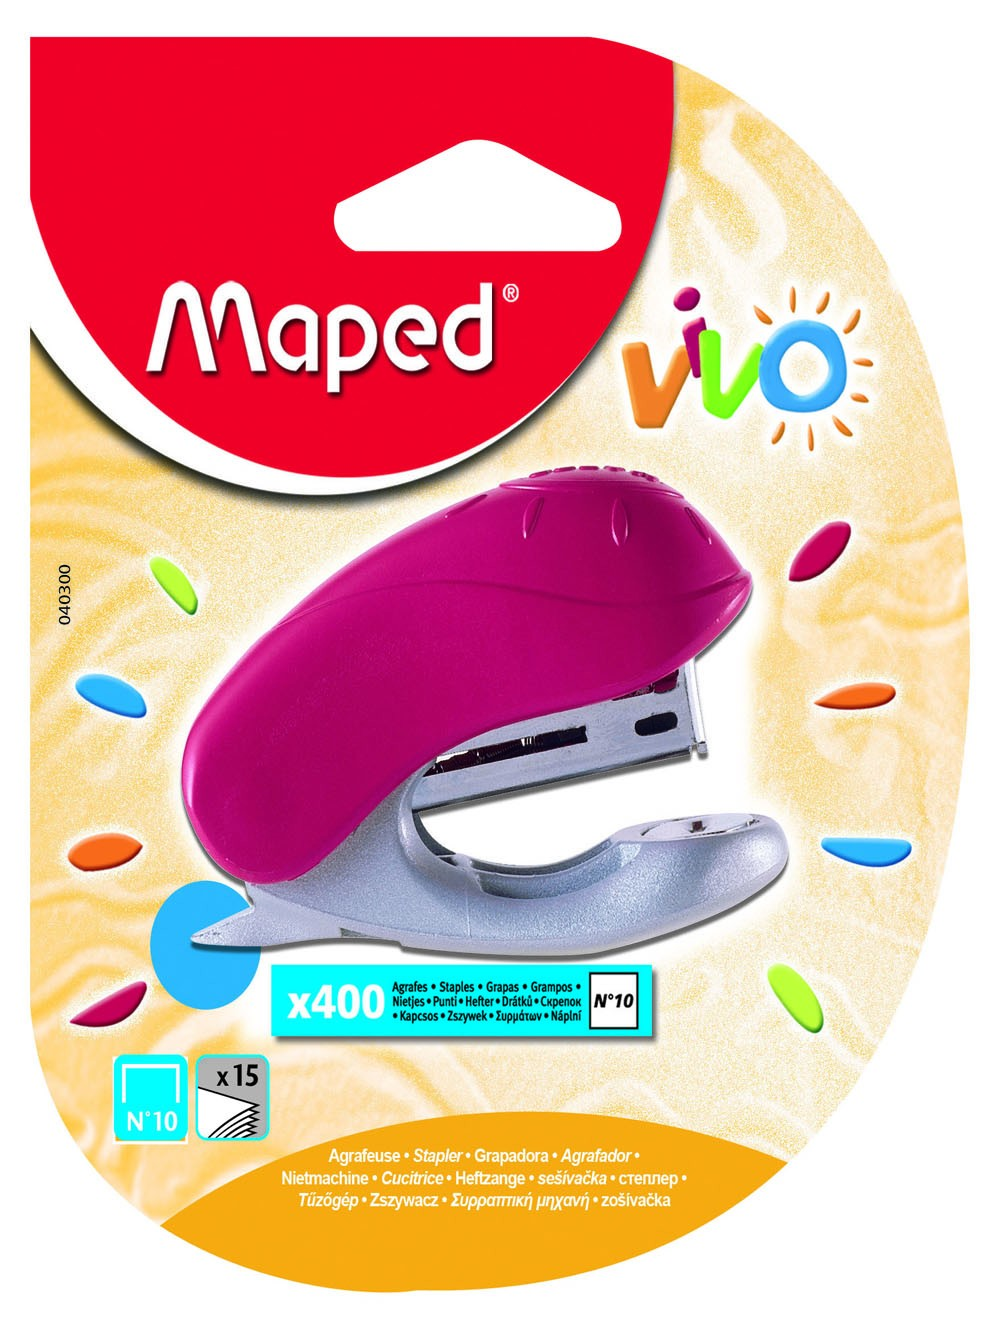 MAPED STAPLER VIVO N°10 + 400 STAPLES